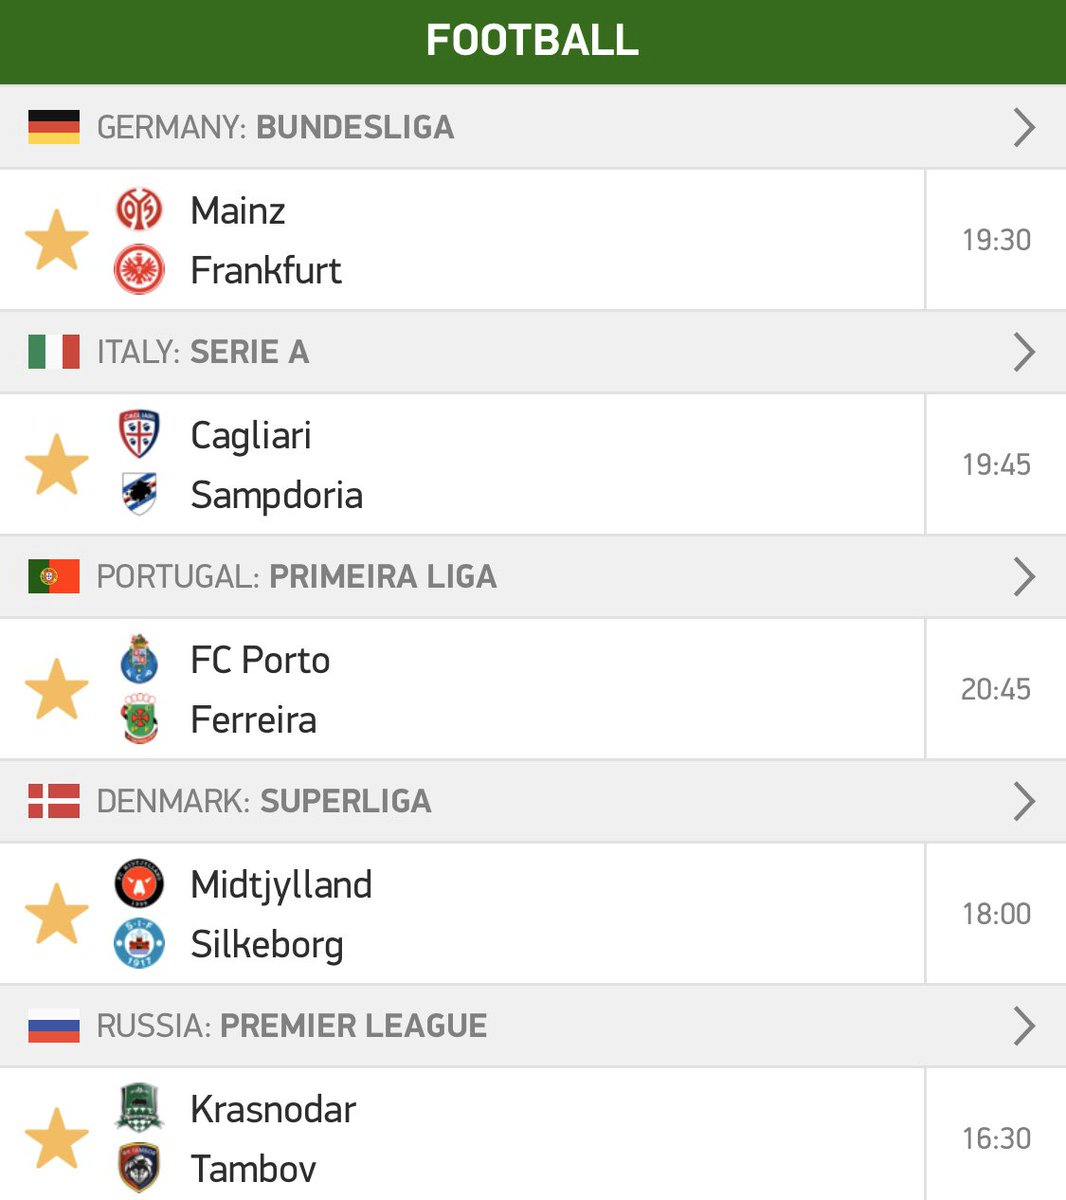 Here's what I'm thinking… Porto win, Midtjylland & over 1.5, Cagliari or draw and over 1.5 goals in the Mainz & Krasnodar games! What you think? I also think I'm going to split them so il try get the best odds for our £5 free bet challenge  <br>http://pic.twitter.com/Gat8YNL0W3